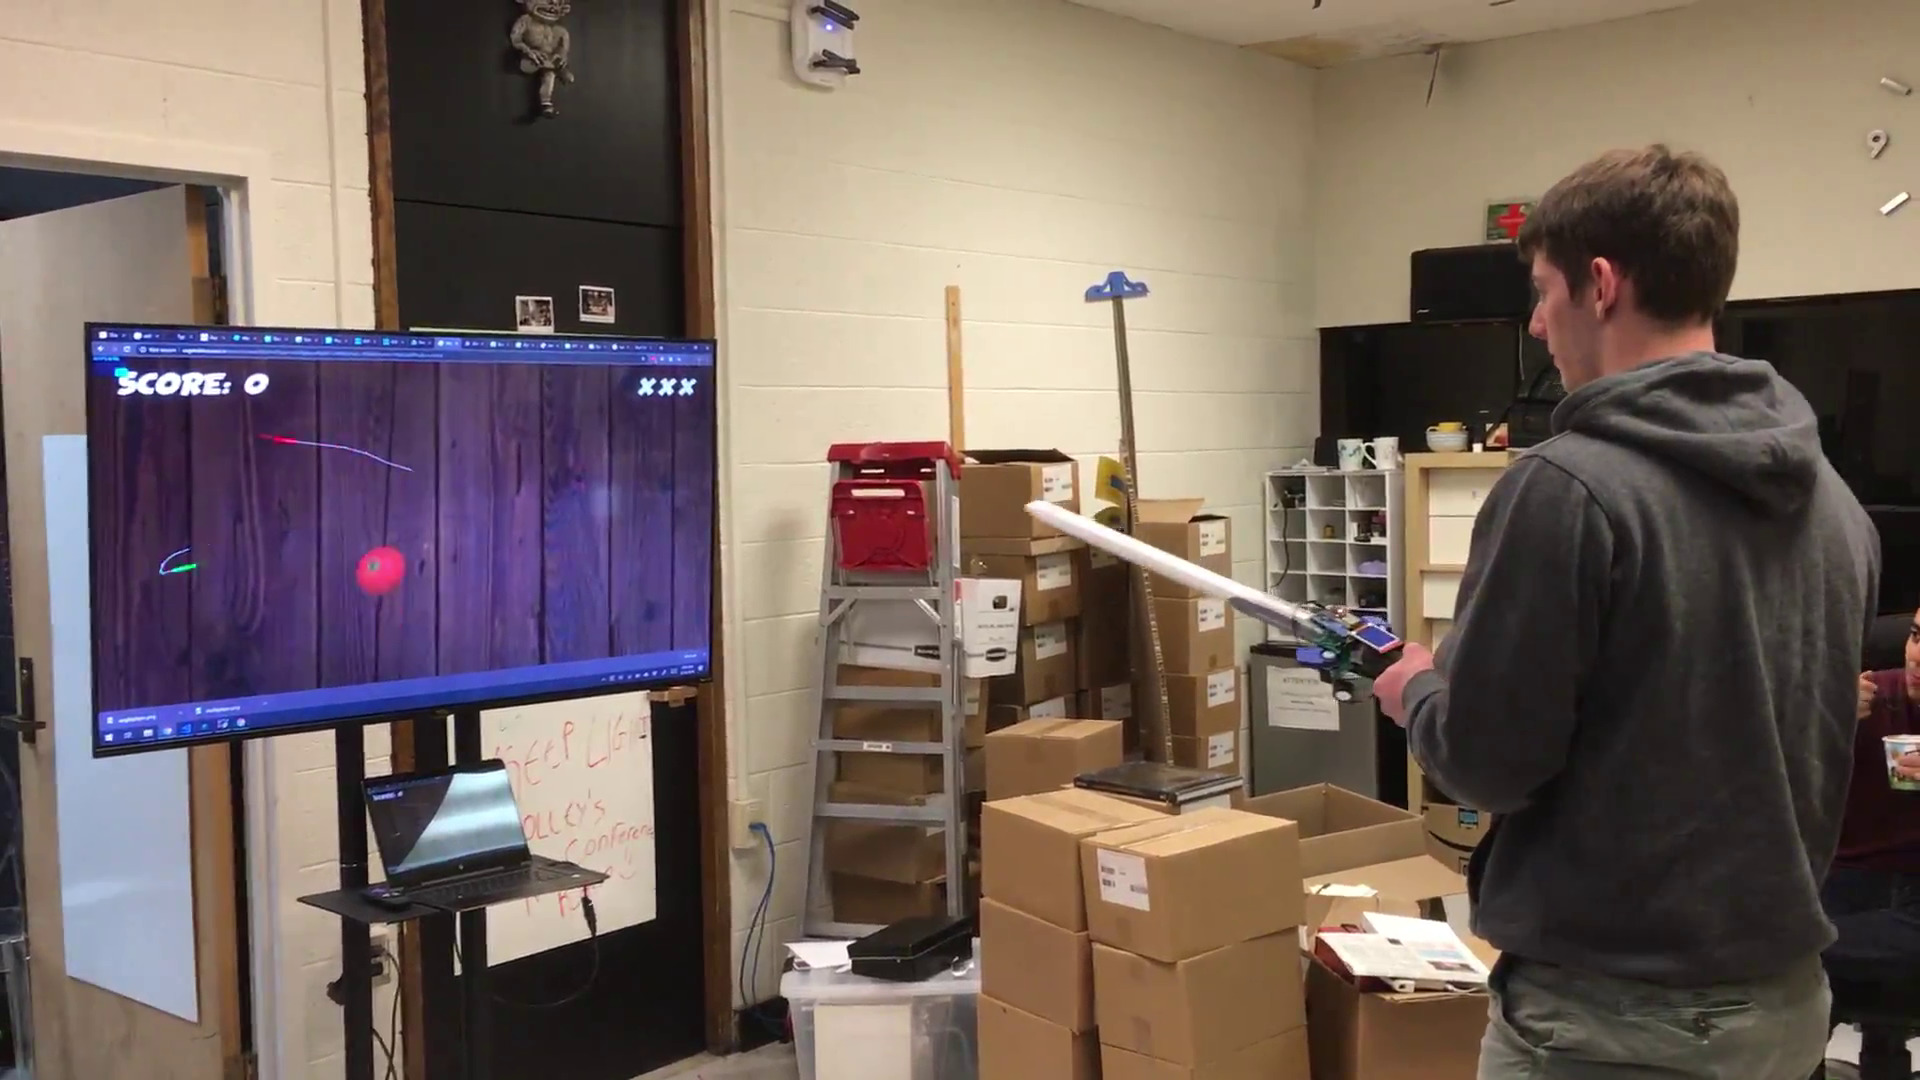 A team member playing vegetable assassin on a large TV